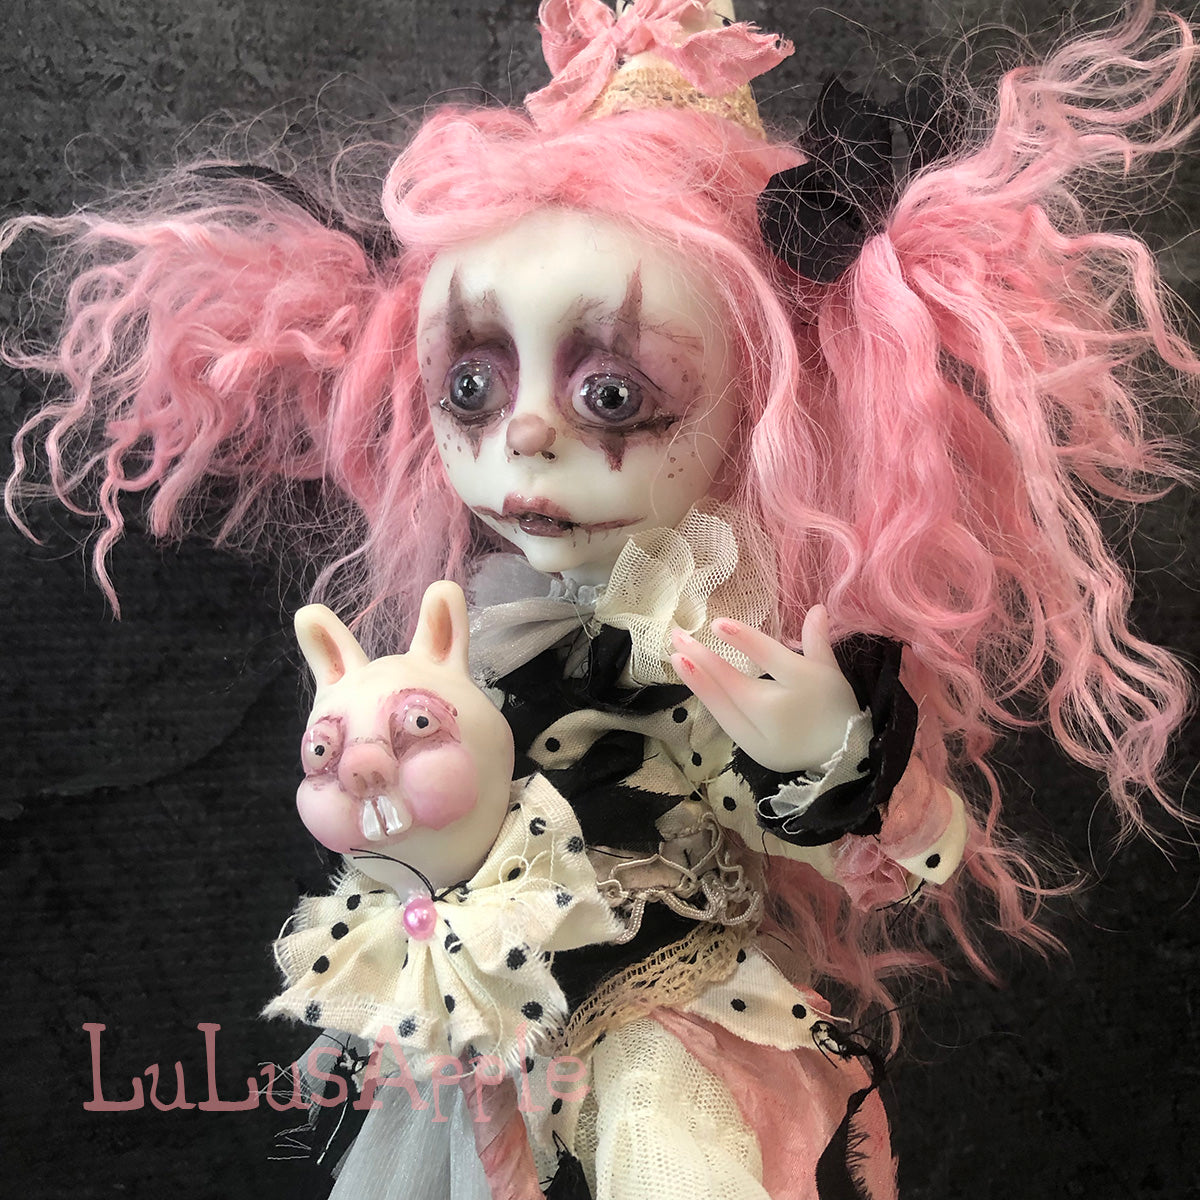 Tatty Scatty Poupee the Clown Dark Cirque OOAK Art Doll LuLusApple